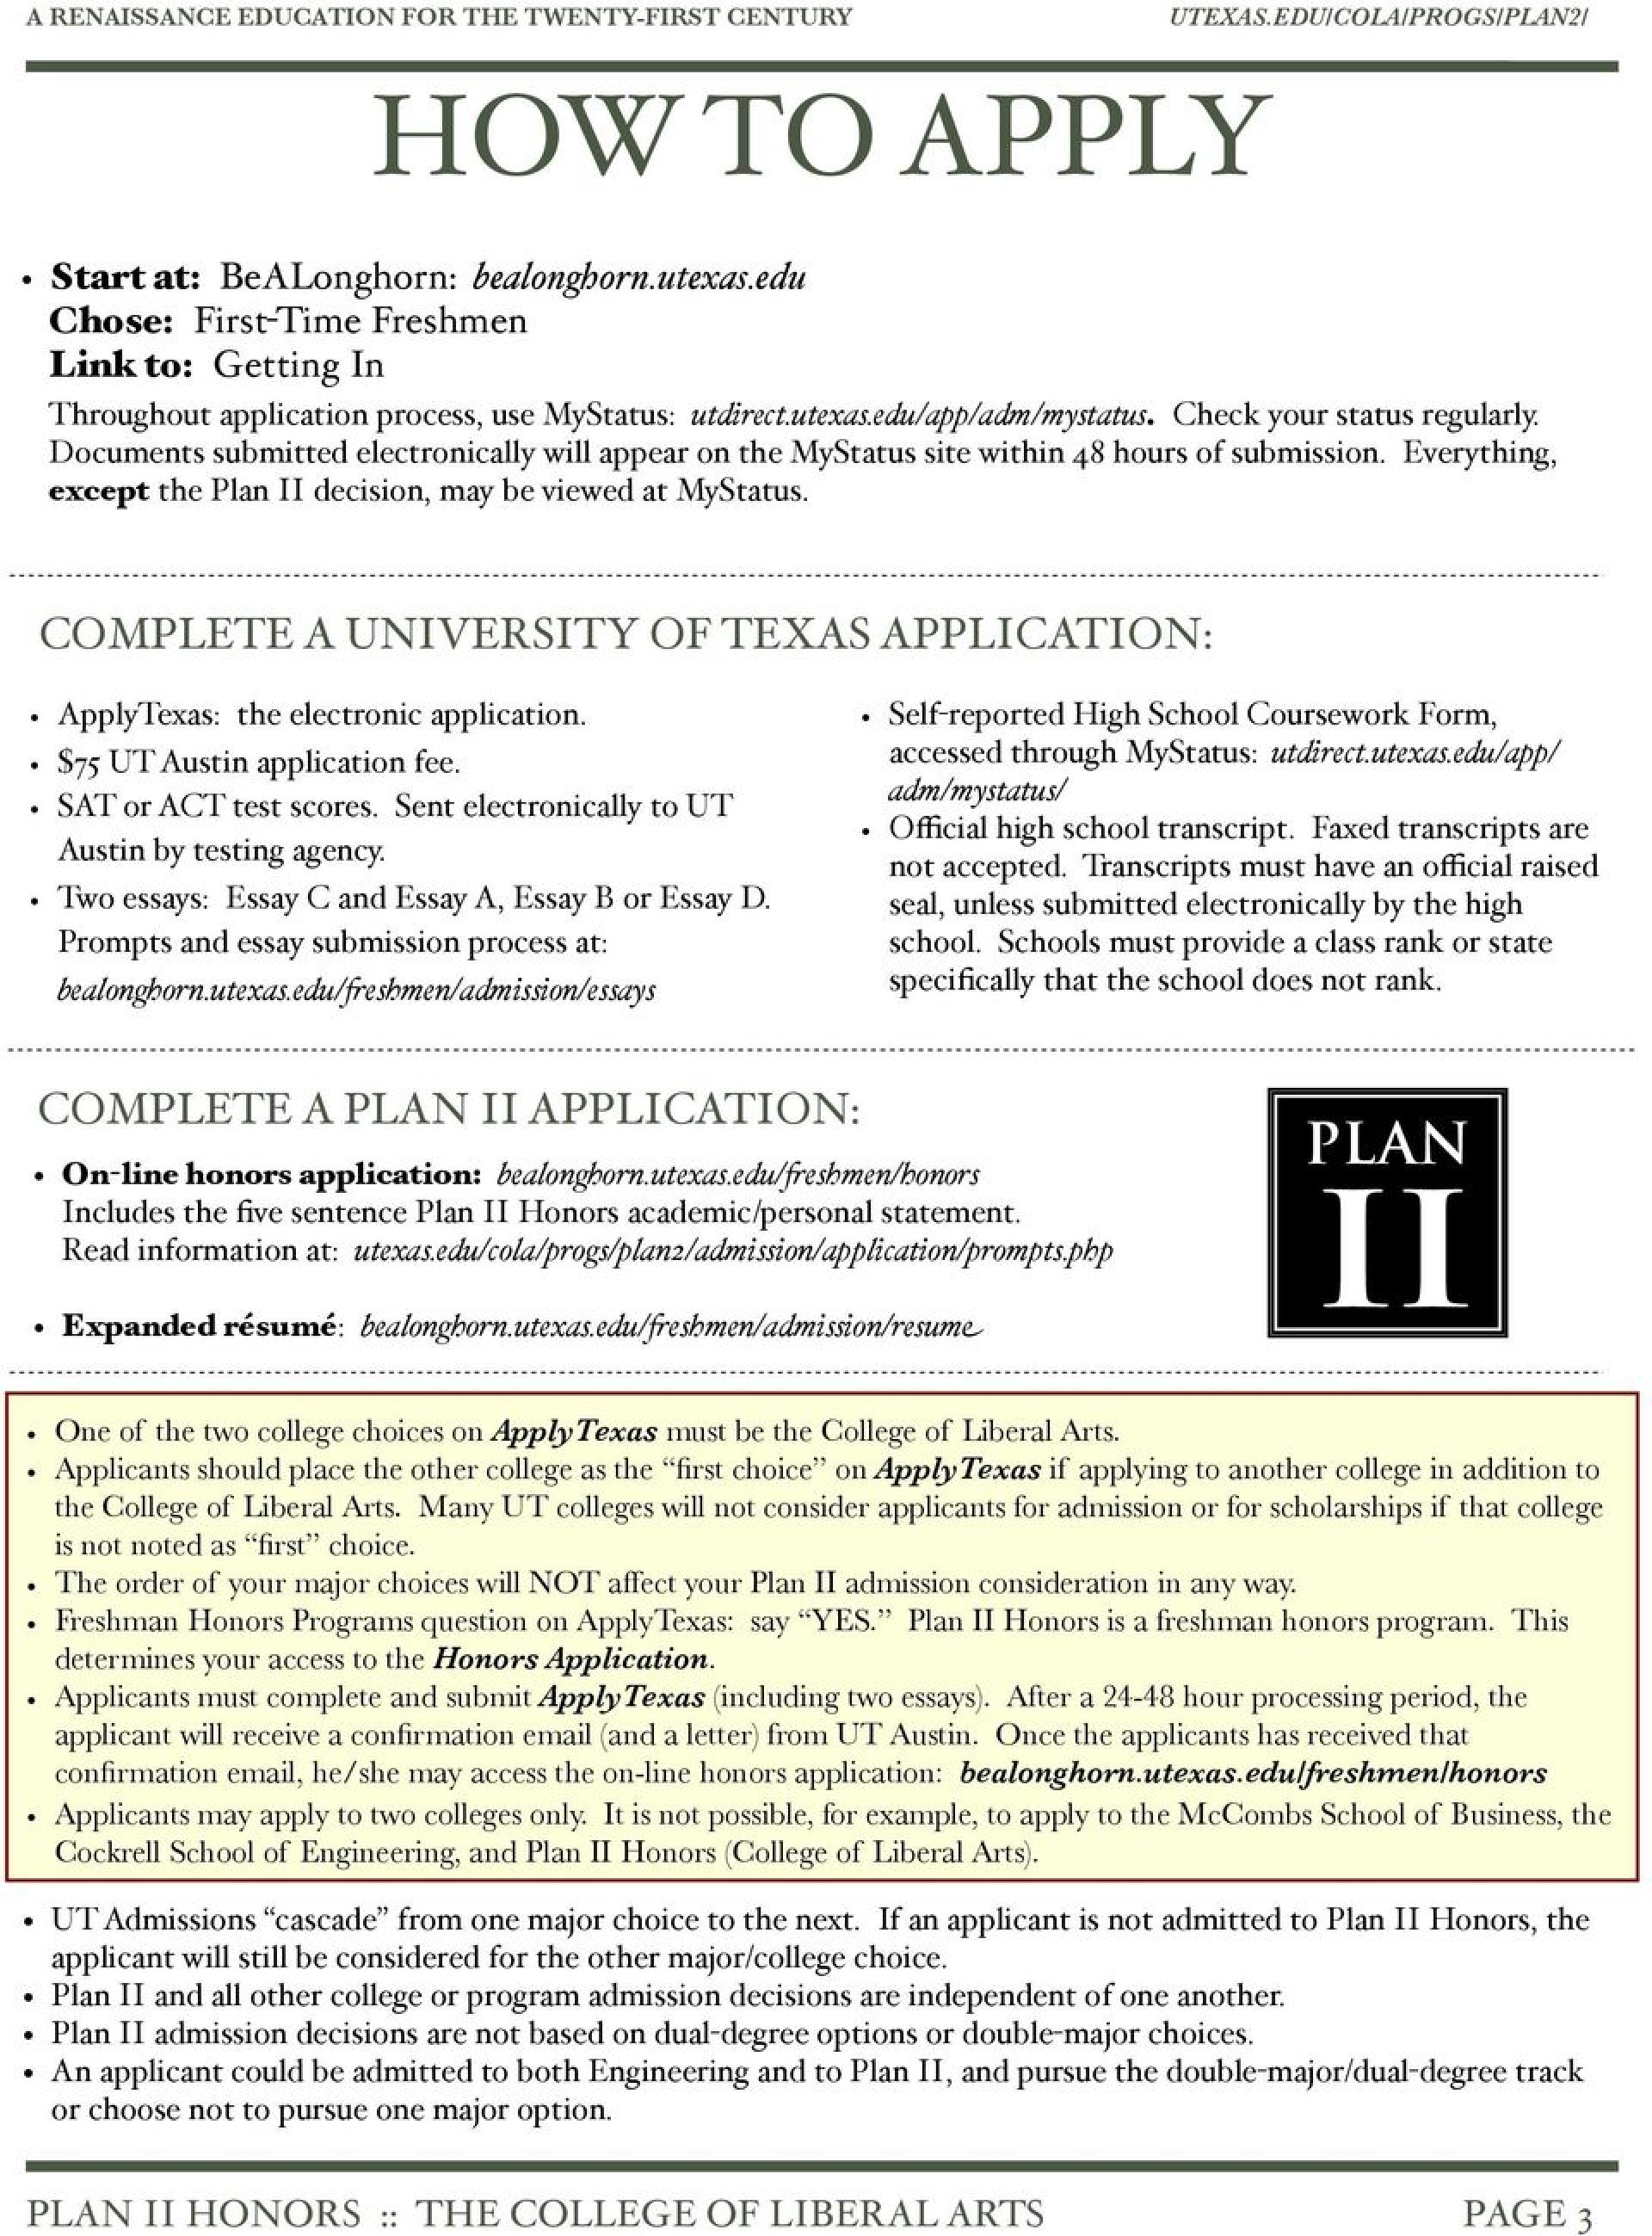 005 Essay Example Fsu Application College Texas Admission P Examples Florida State Remarkable Sample 1920